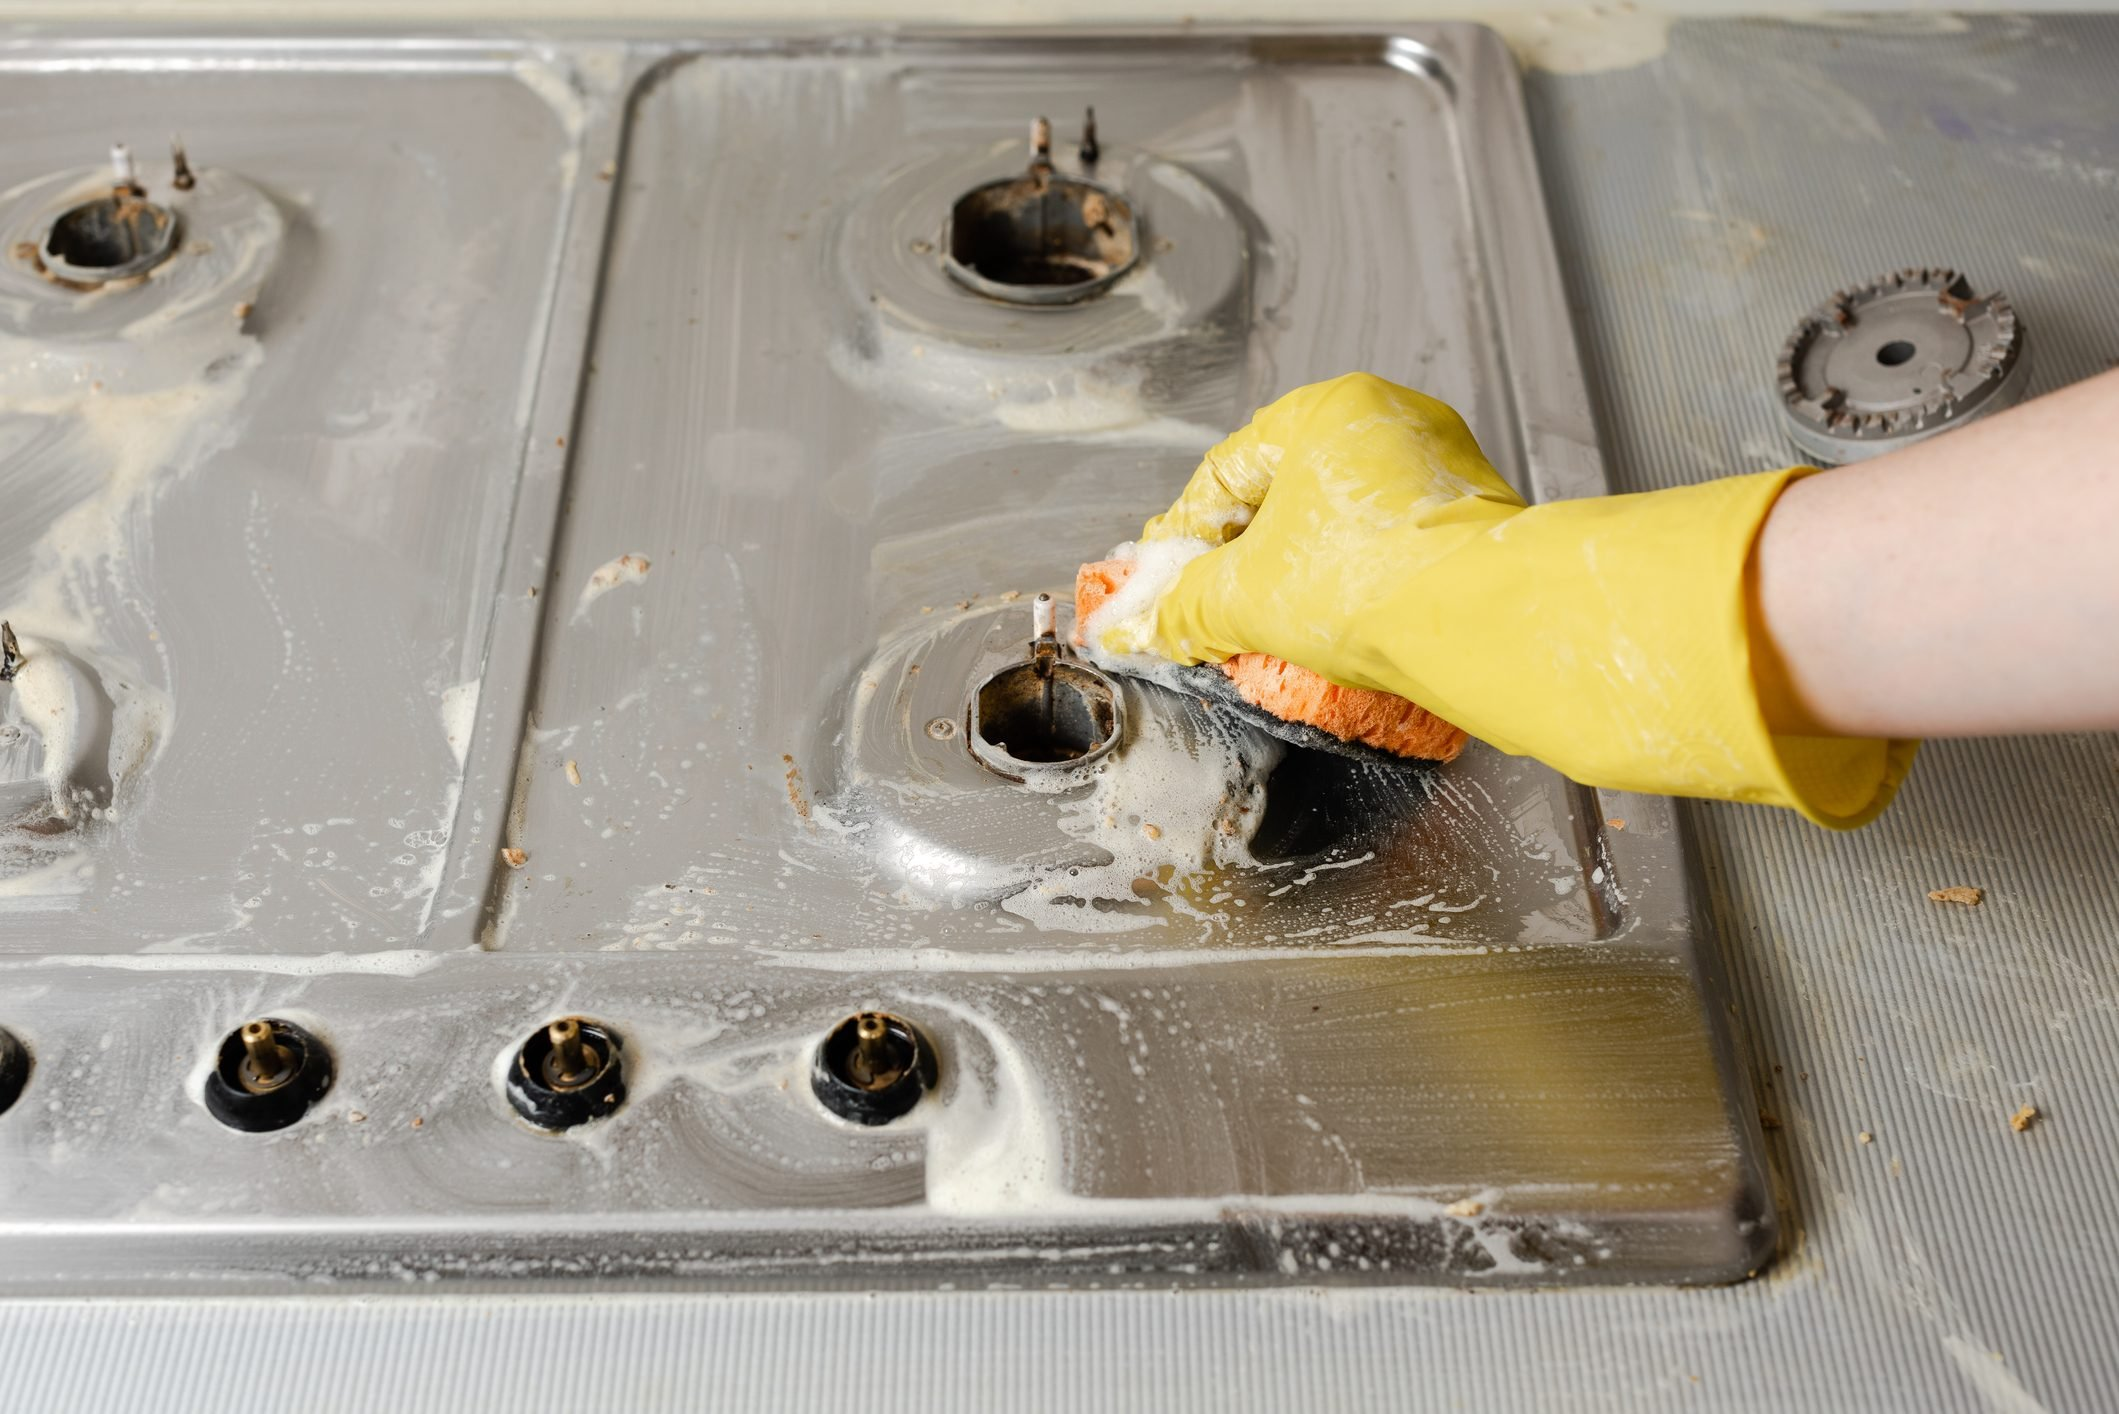 Hand in yellow rubber glove wash gas stove burner